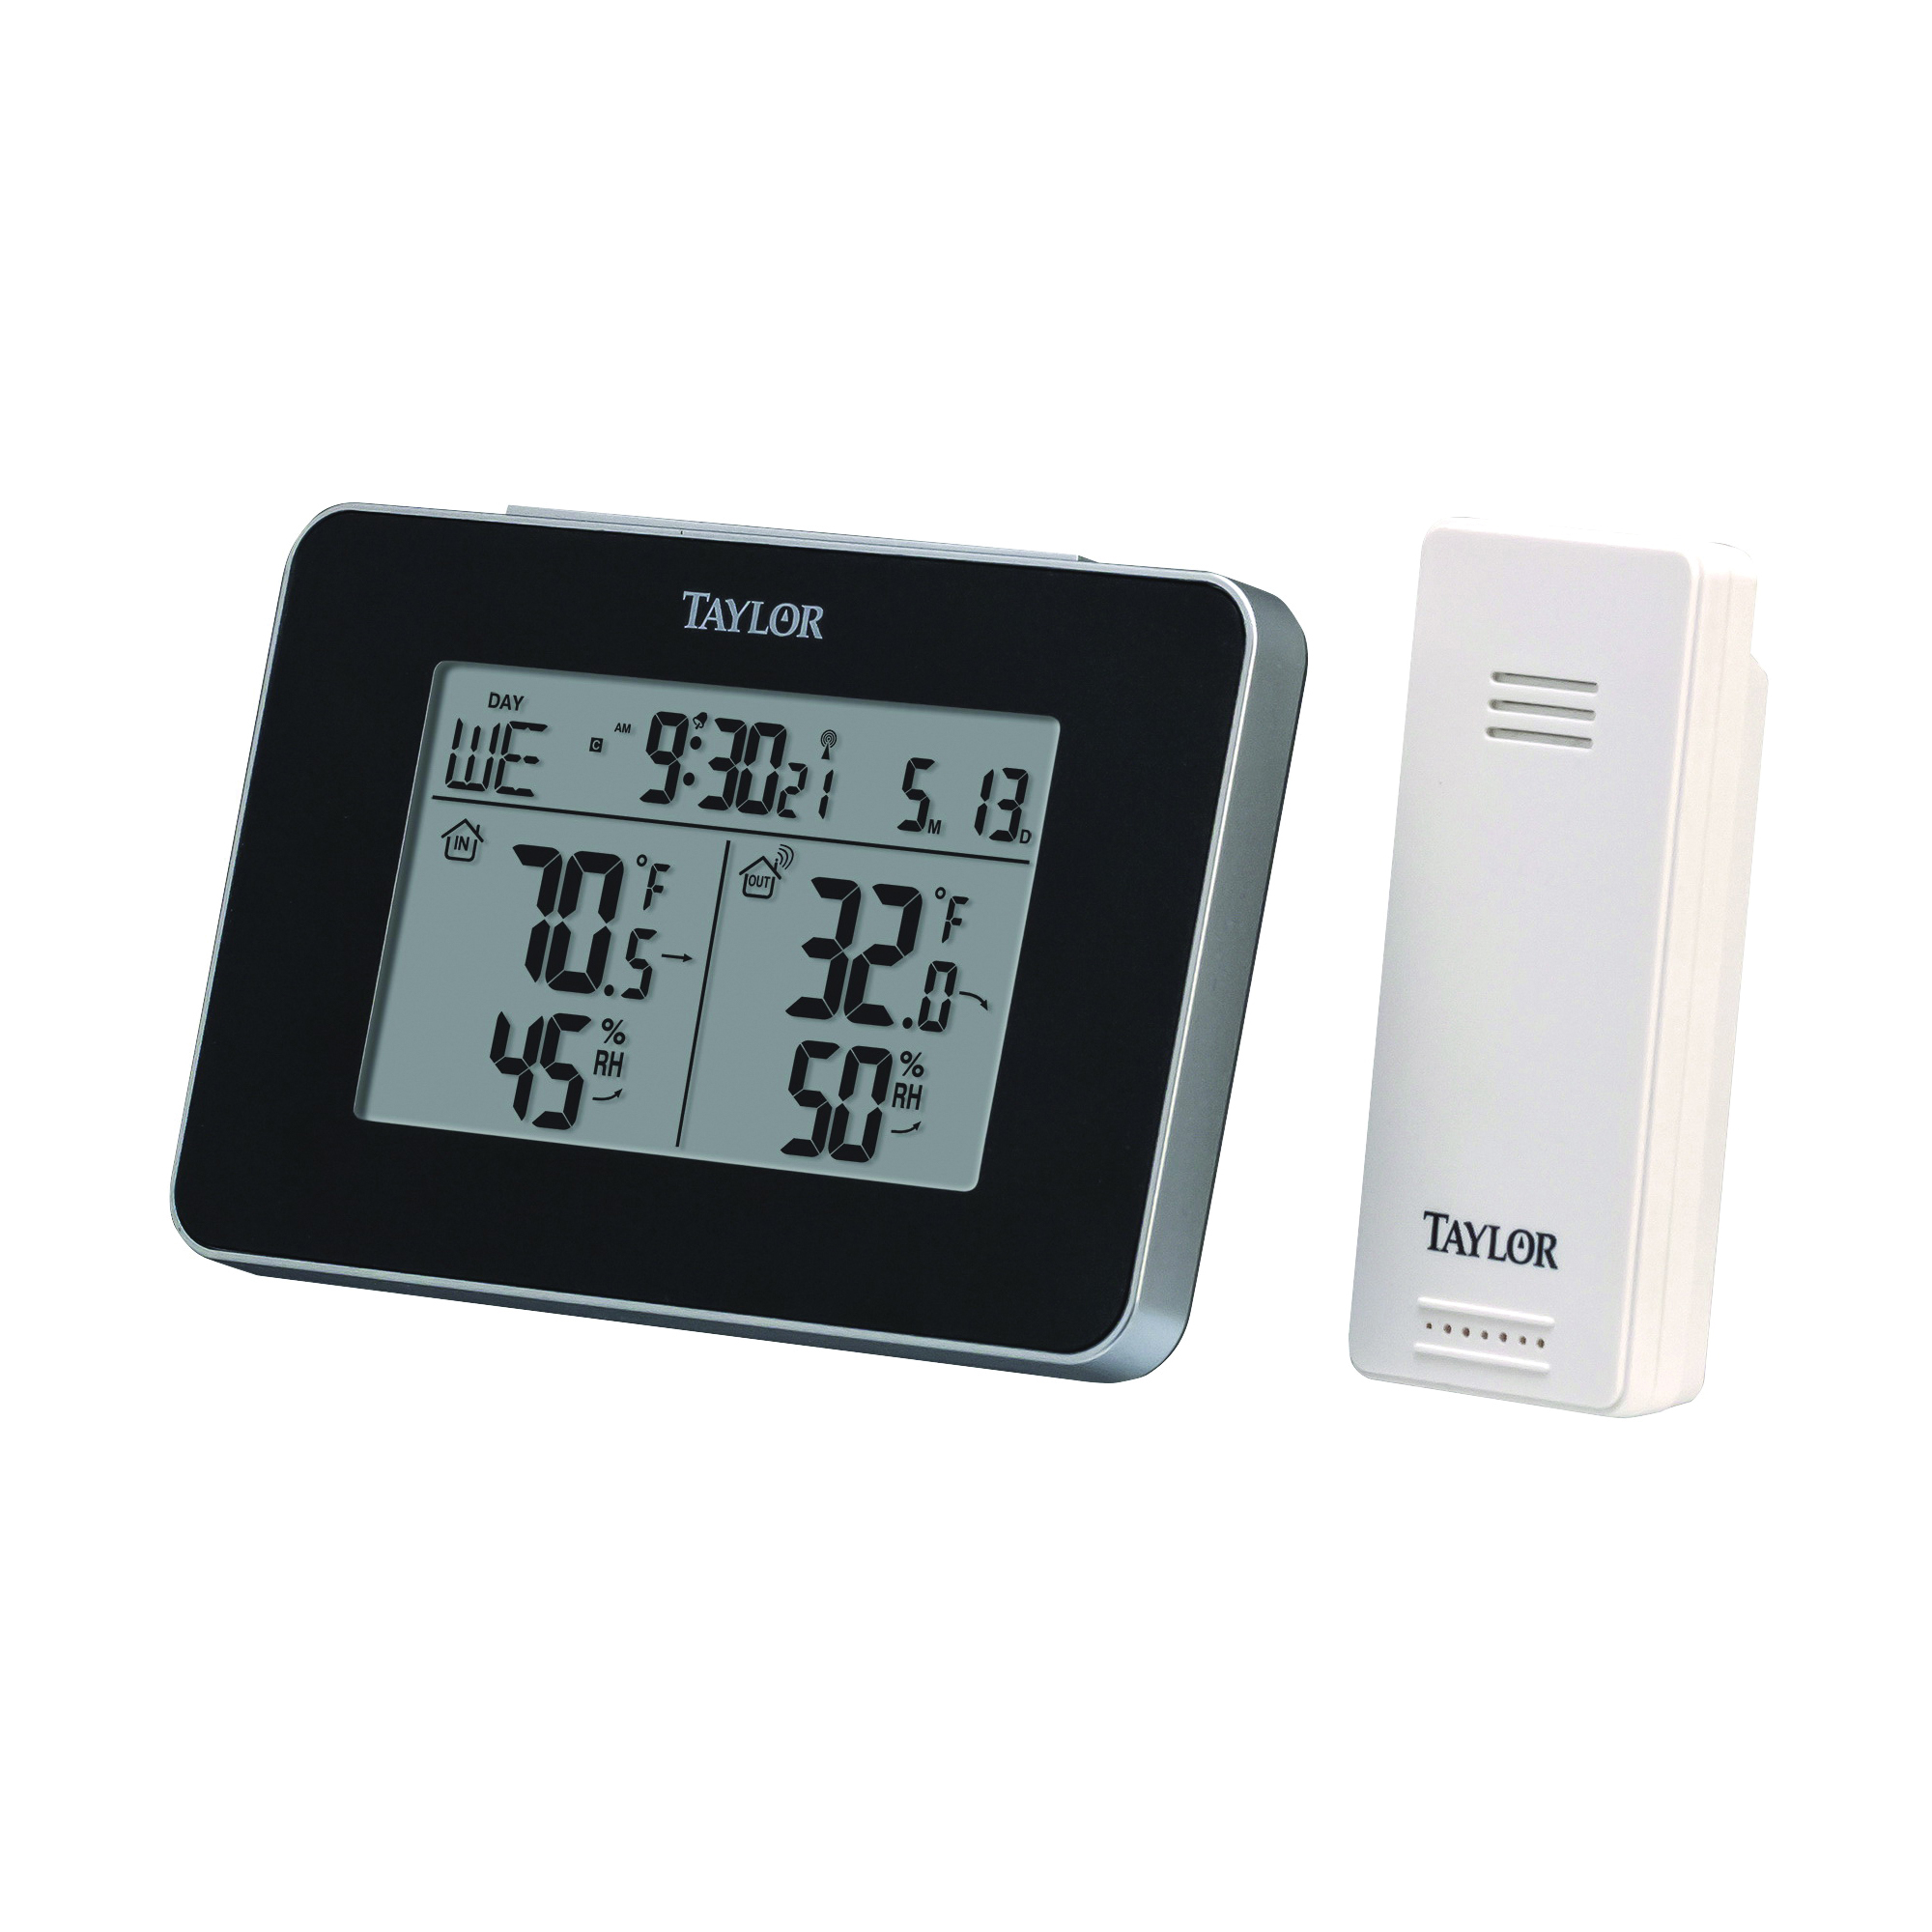 Picture of Taylor 1731 Wireless In/Out Thermometer, 32 to 122 deg F, Plastic Casing